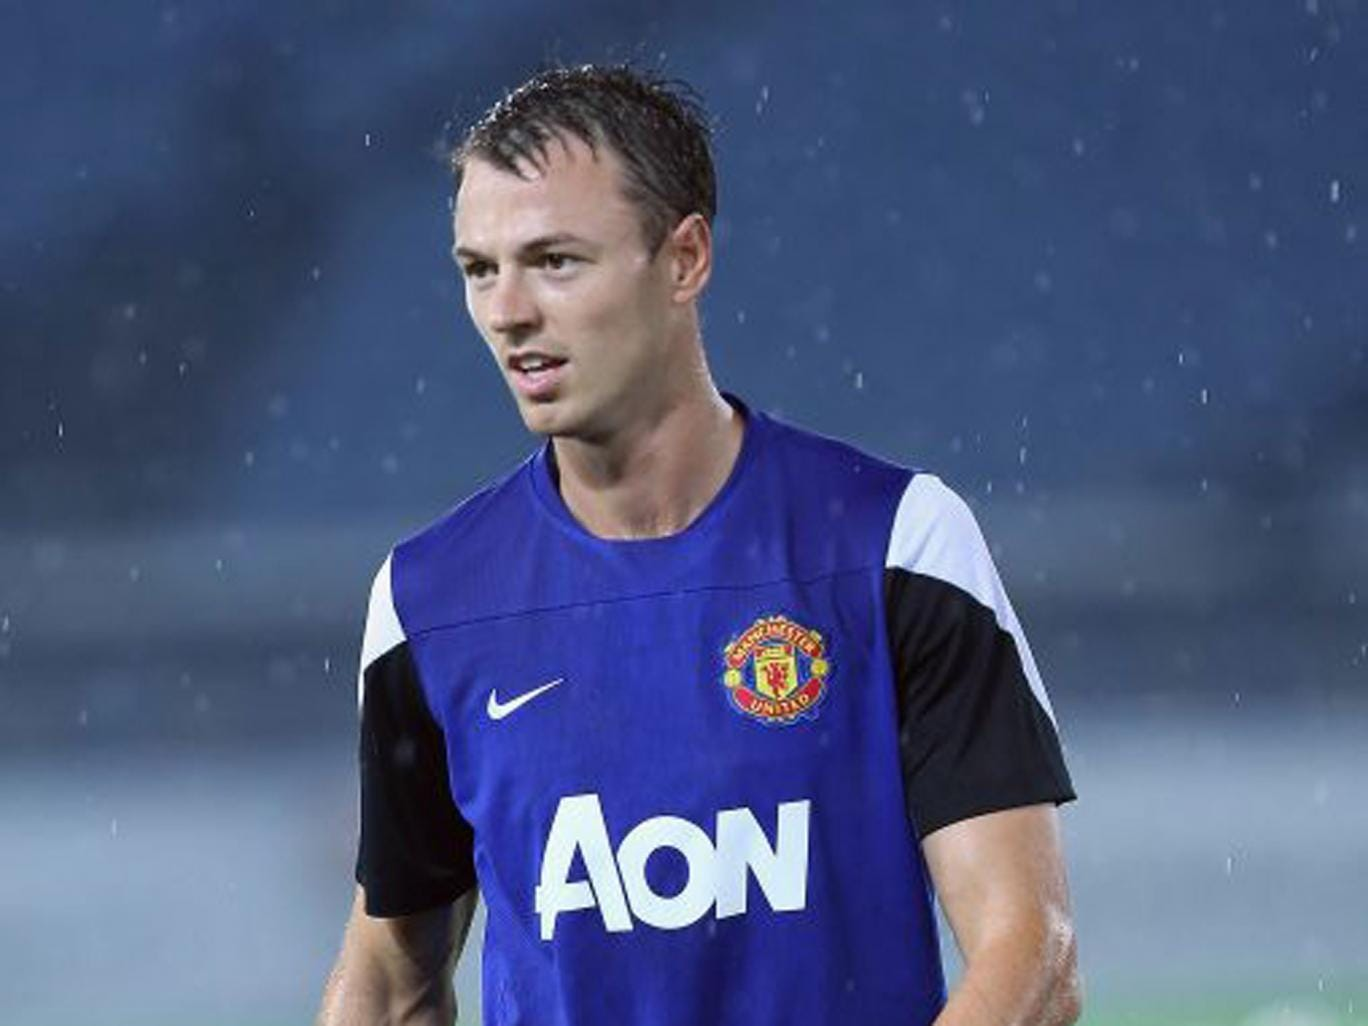 Jonny Evans is unsure how big an impact Jose Mourinho will have